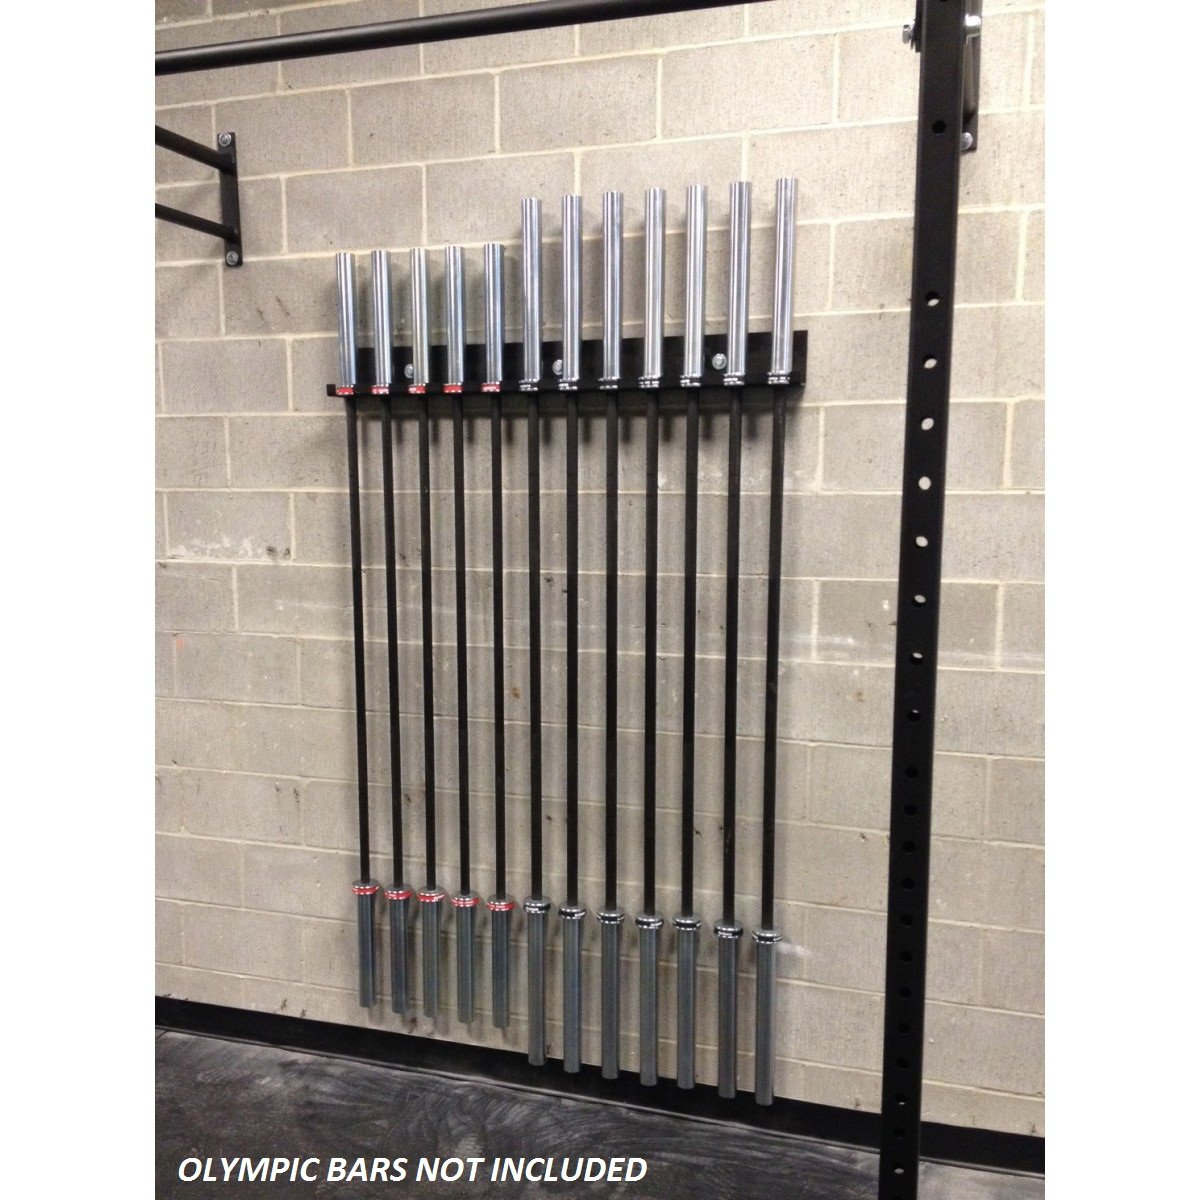 USA-MADE Wall Mounted Olympic Bar Holder - 12 Bar Wall Mount Vertical Barbell Storage Rack - Weight Bar Wall Rack